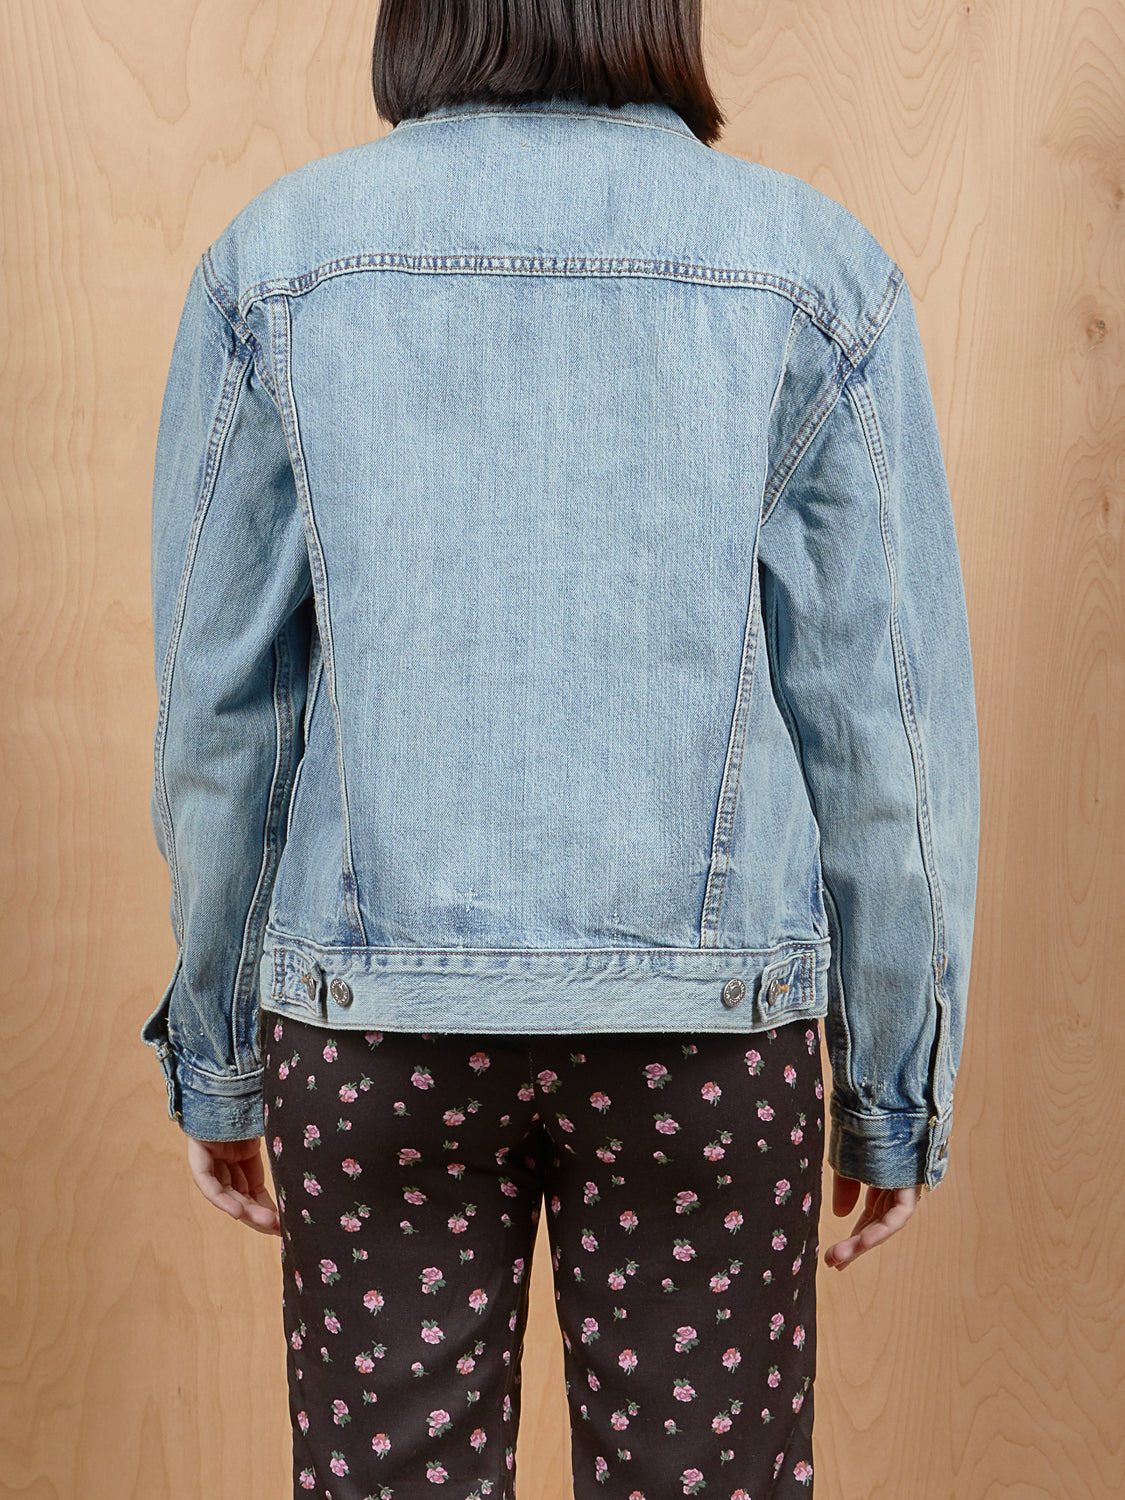 Levi's Light Wash Denim Jacket